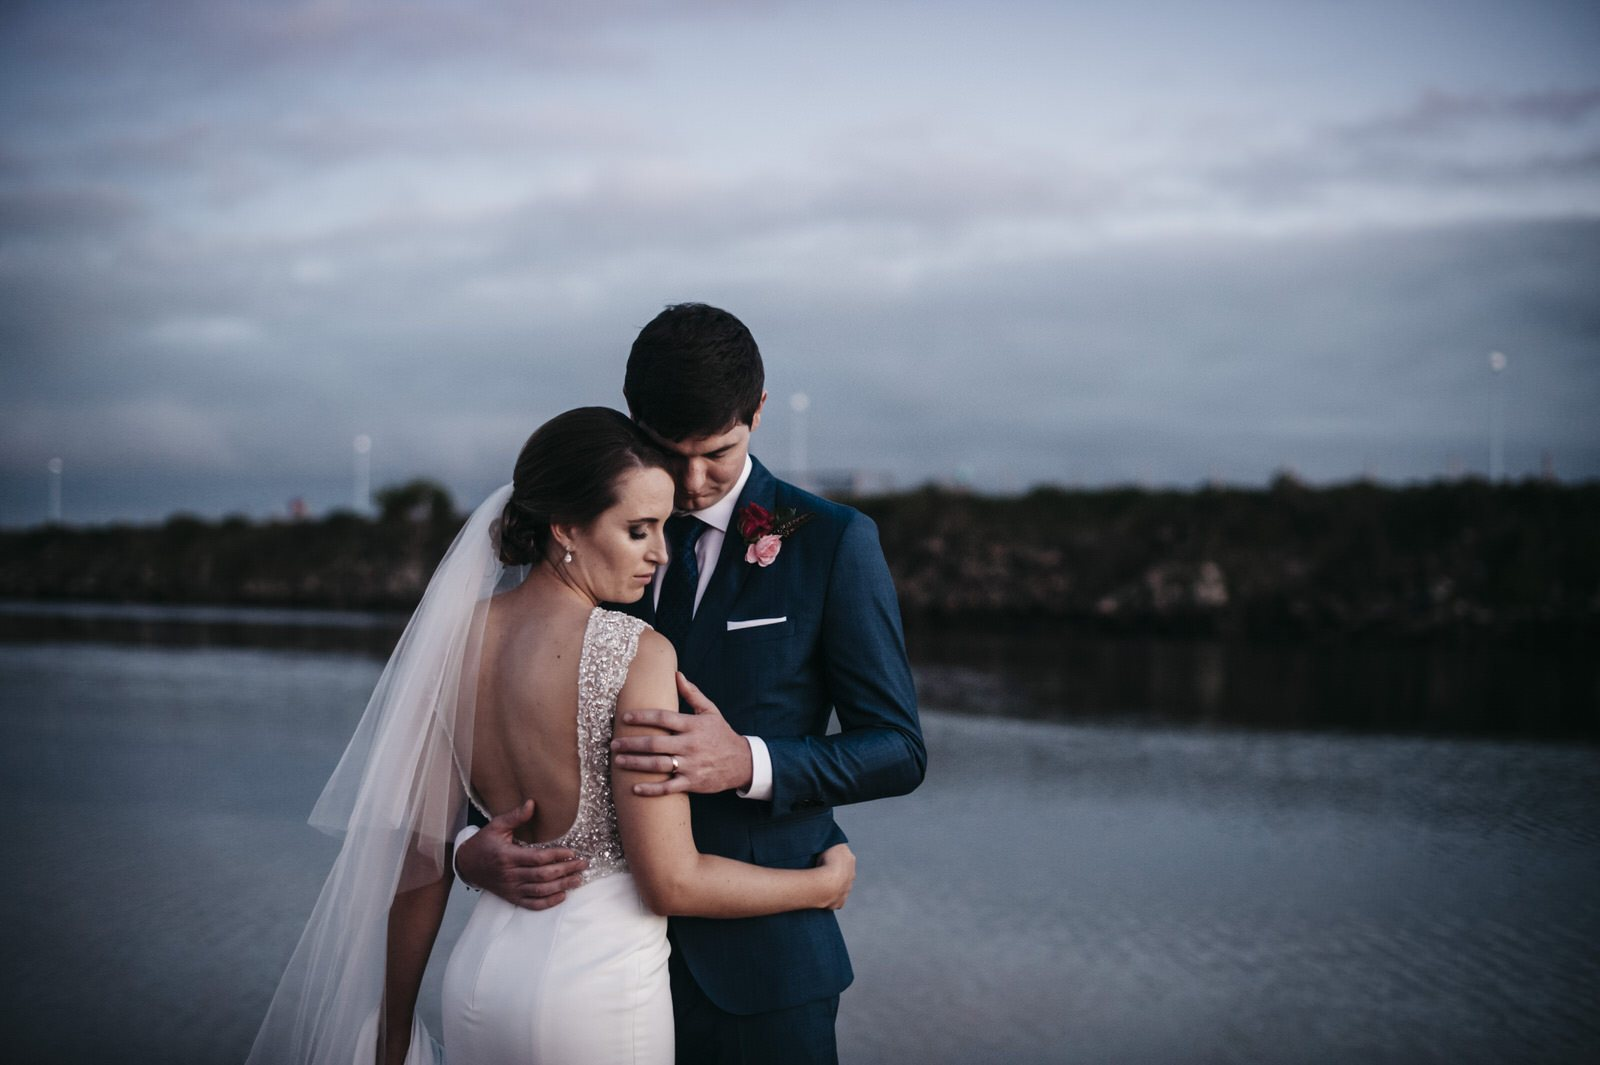 Wedding photography | Photography Ballina | Bye Bye Blackbird Photography